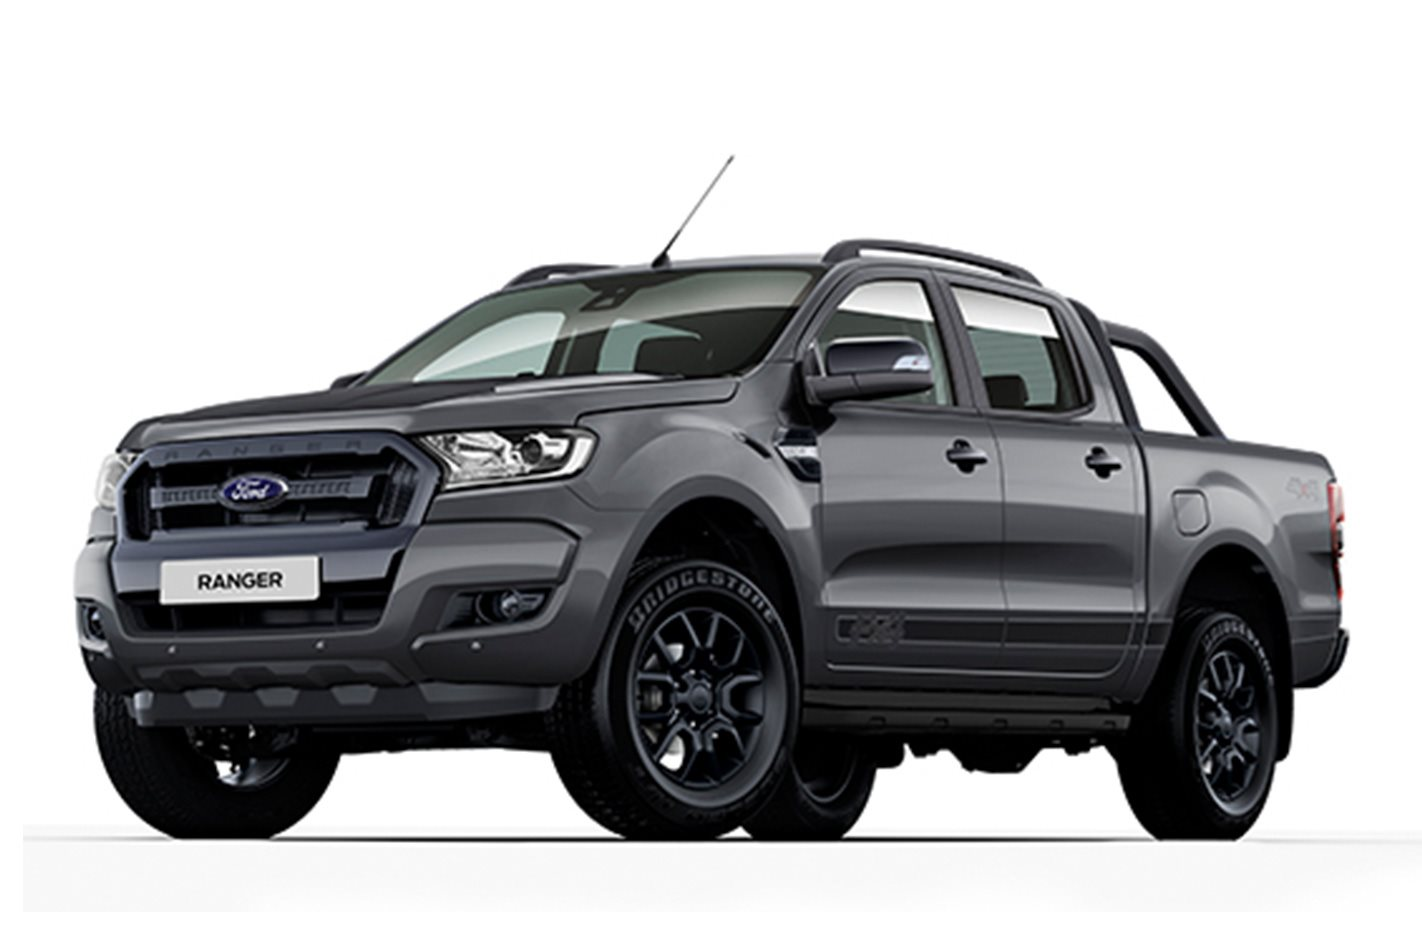 ford ranger fx4 special edition 4x4 australia. Black Bedroom Furniture Sets. Home Design Ideas